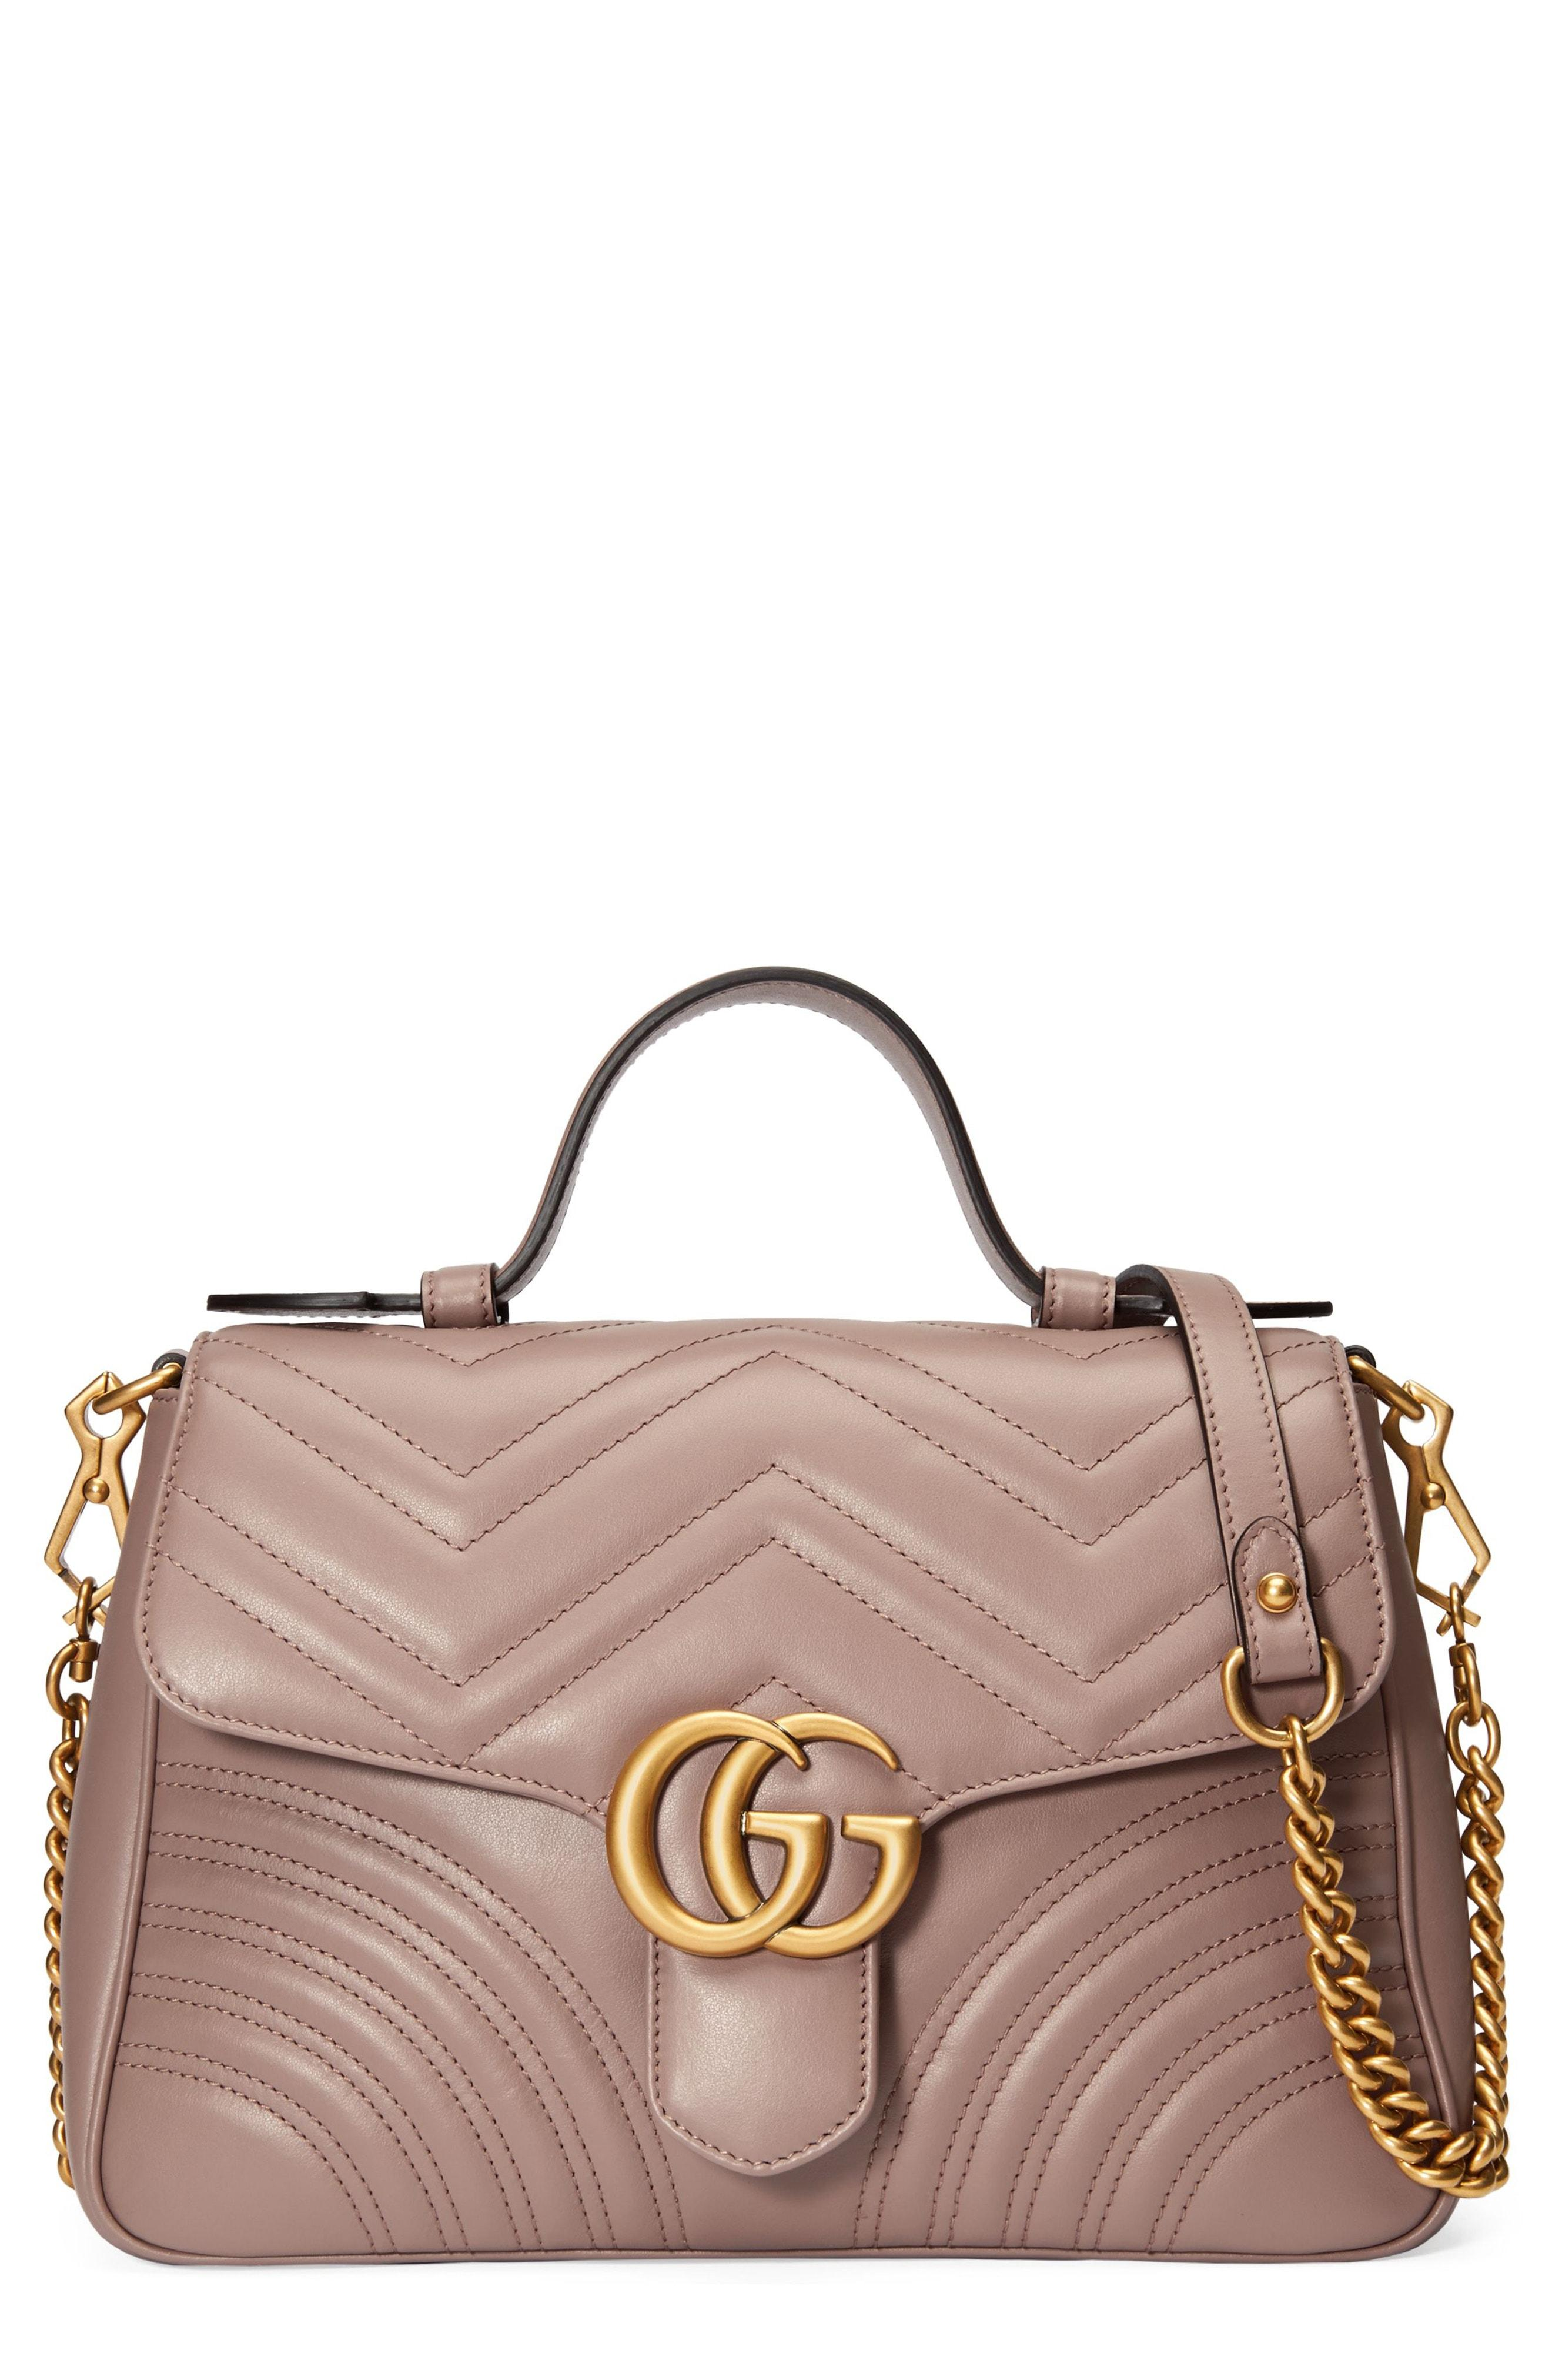 5b4a4c54e098 Gucci Gg Marmont Small Chevron Quilted Top-Handle Bag With Chain Strap In  Pink